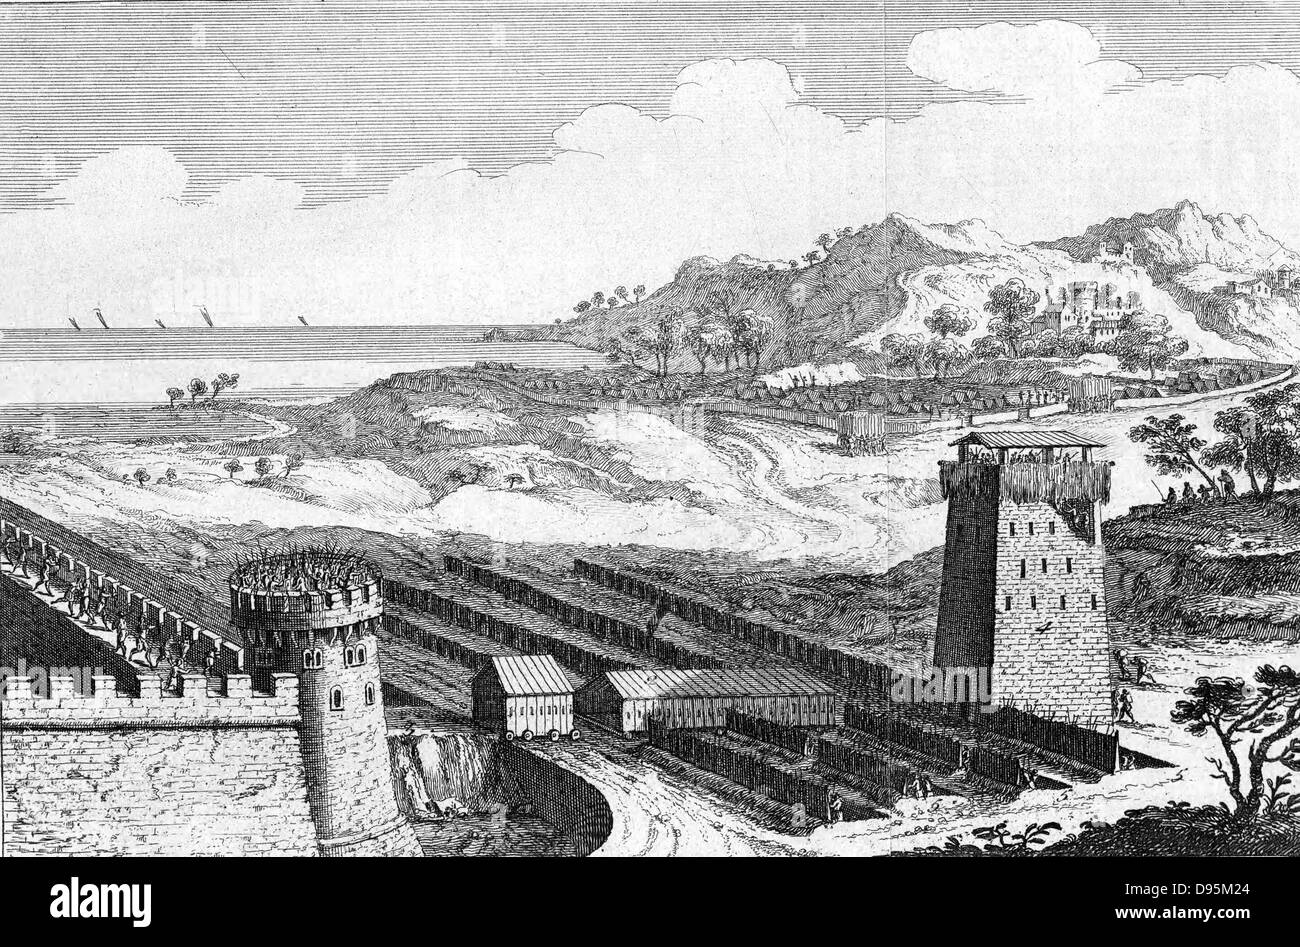 Reconstruction of Julius Caesar's siege of Marseilles, showing the musculus or covered way to protect engineers - Stock Image